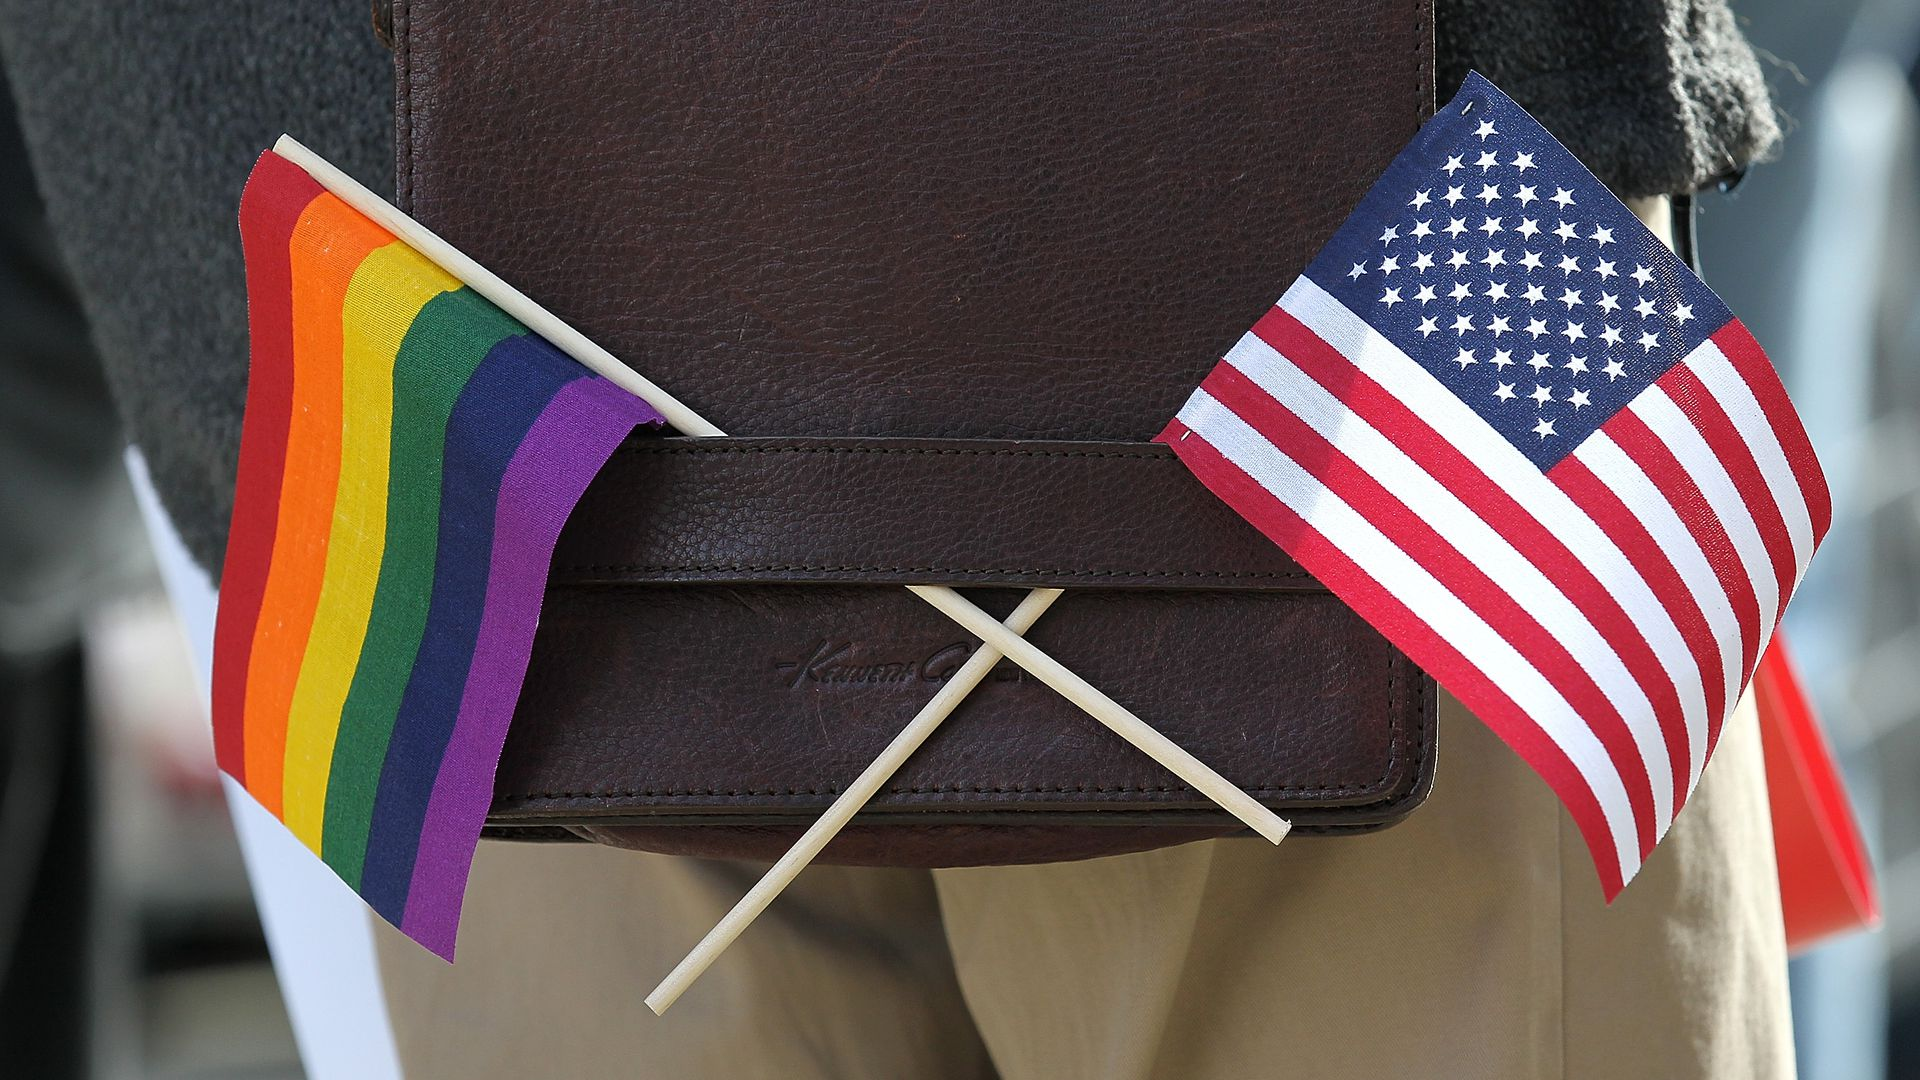 American flag and Pride flag